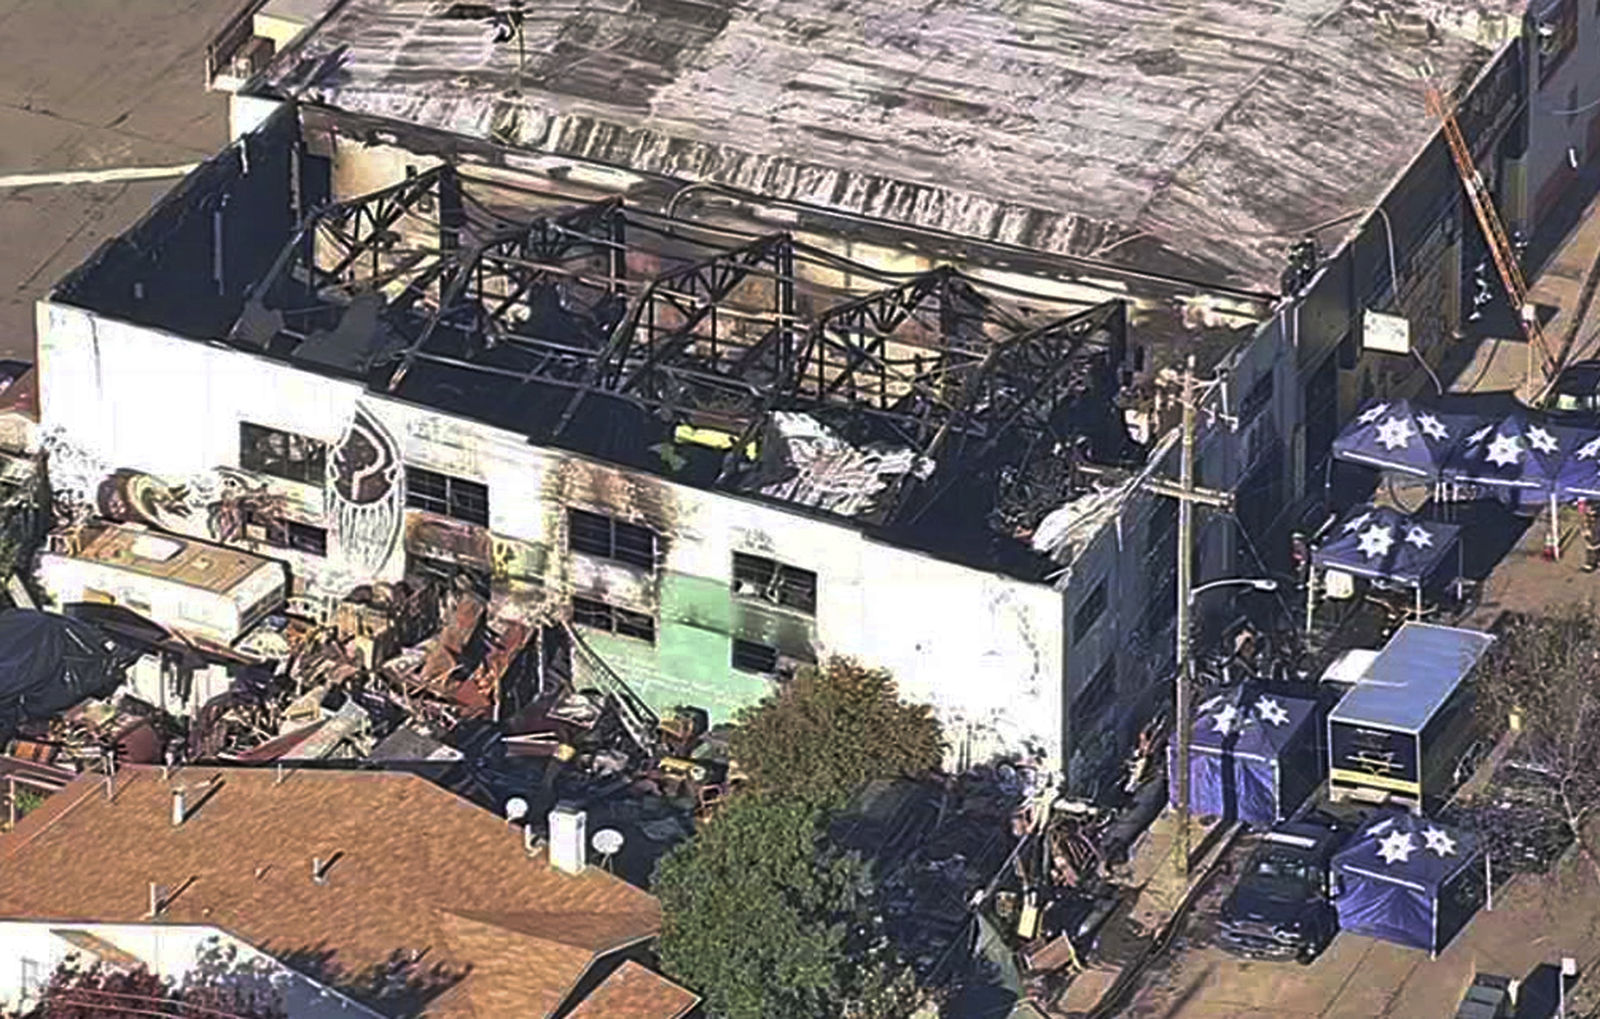 FILE - This Dec. 3, 2016, file image from video provided by KGO-TV shows the Ghost Ship Warehouse after a fire swept through the building in Oakland, Calif. A jury has decided the fate of two men charged with involuntary manslaughter after prosecutors say they turned a San Francisco Bay Area warehouse into a cluttered maze that trapped 36 partygoers during a fast-moving fire. The verdicts for Derick Almena and Max Harris will be announced Thursday, Sept. 5, 2019, after a three-month trial that drew family and friends of the victims to a packed courtroom, said Almena's attorney, Brian Getz. They face up to 39 years in prison if convicted. (KGO-TV via AP, File)